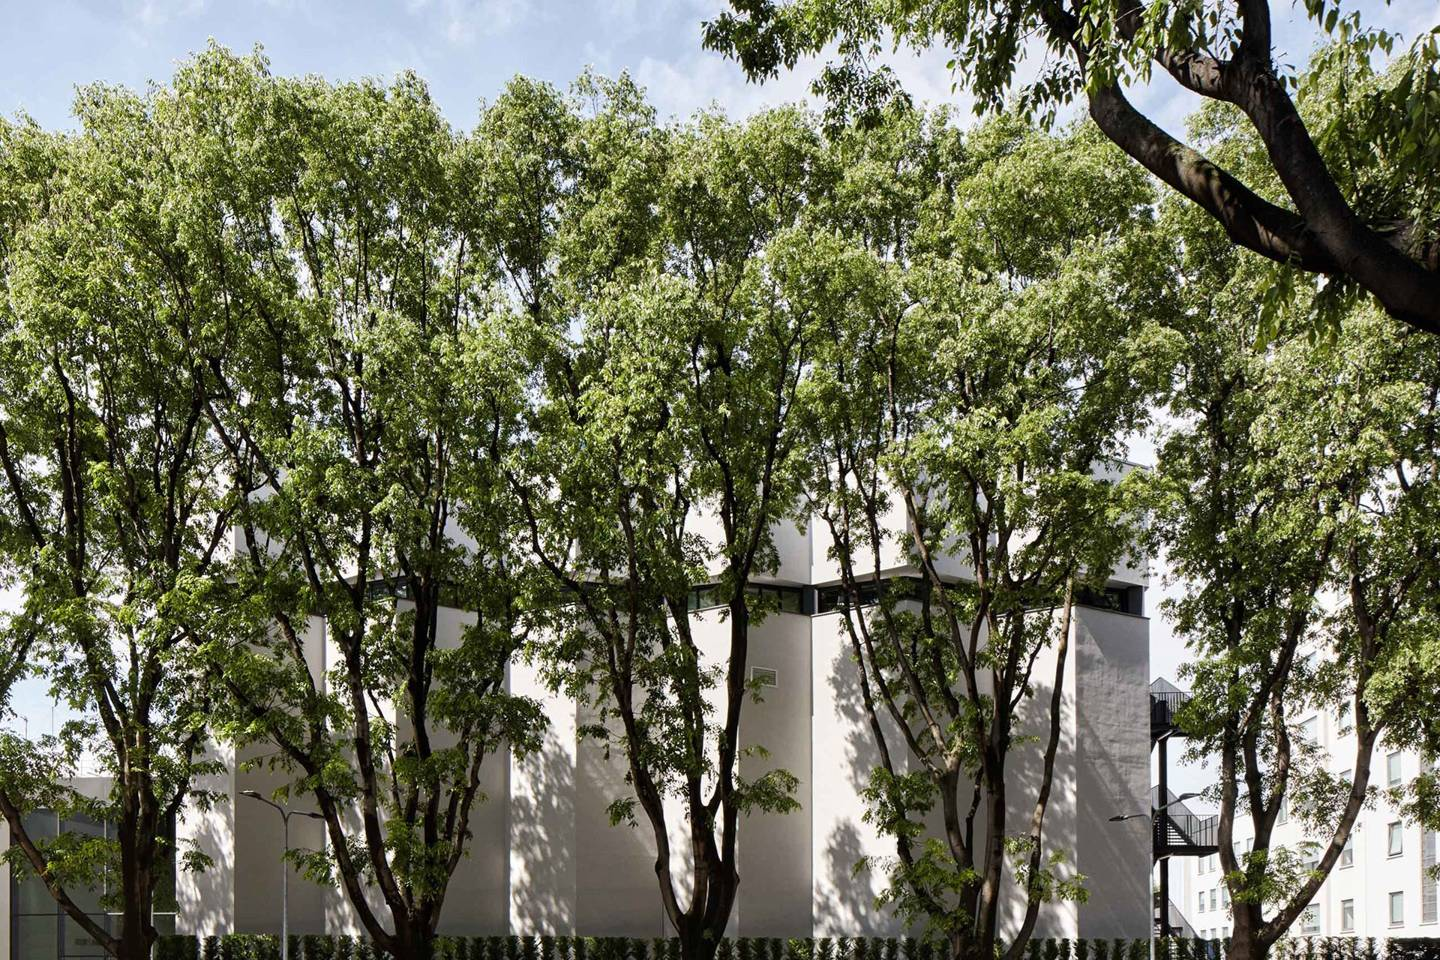 exterior image of armani silos building in milan with a row of green trees in front of a white building